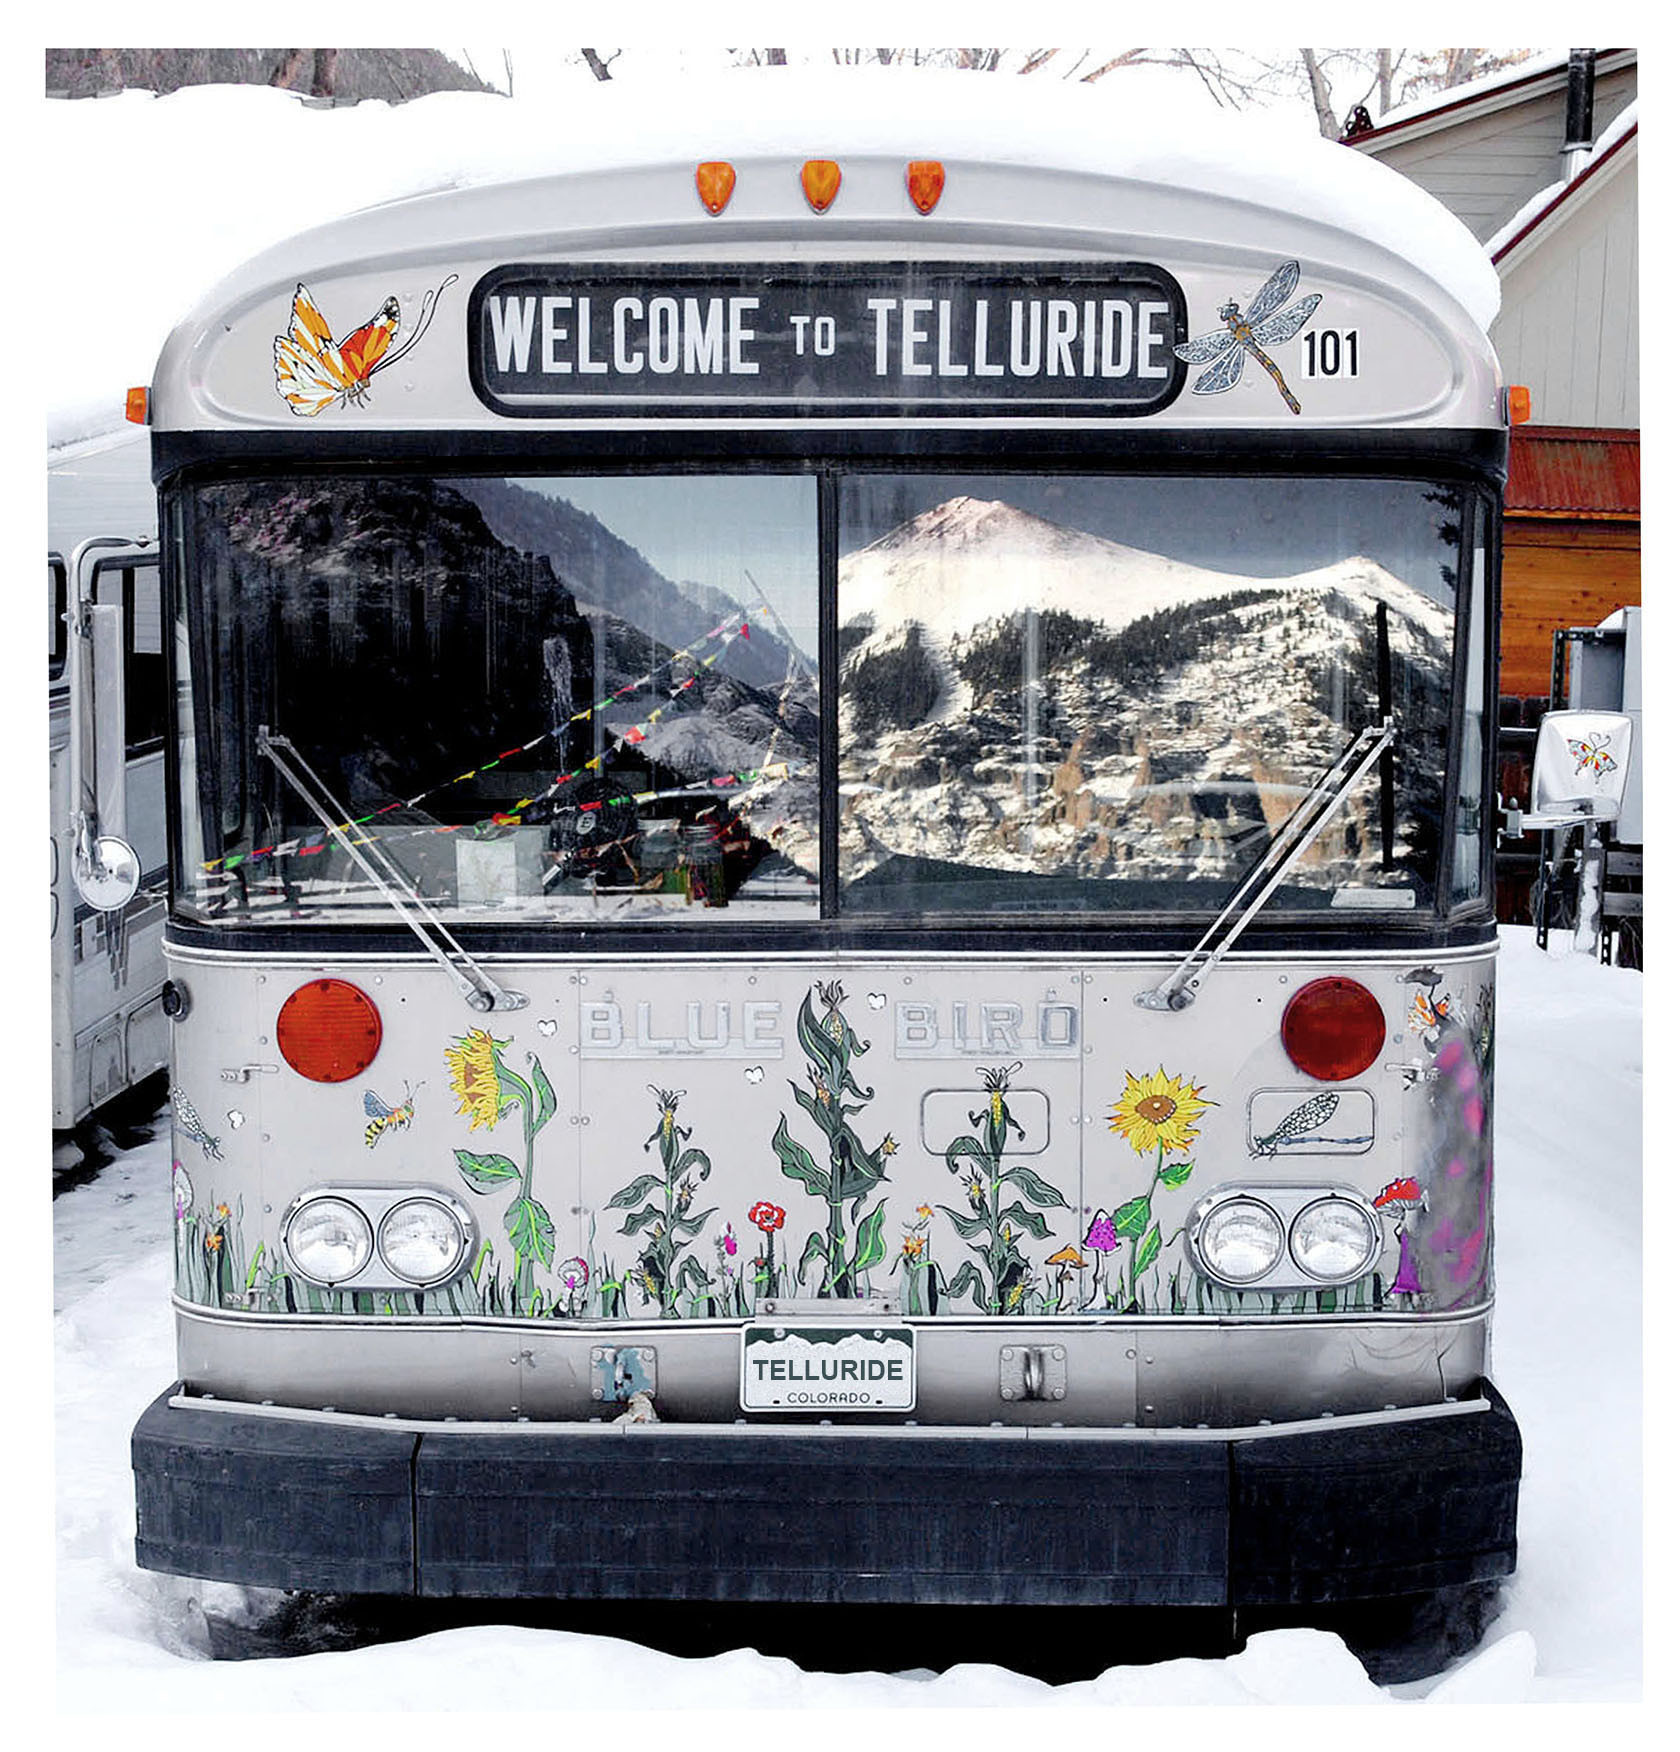 Welcome to Telluride